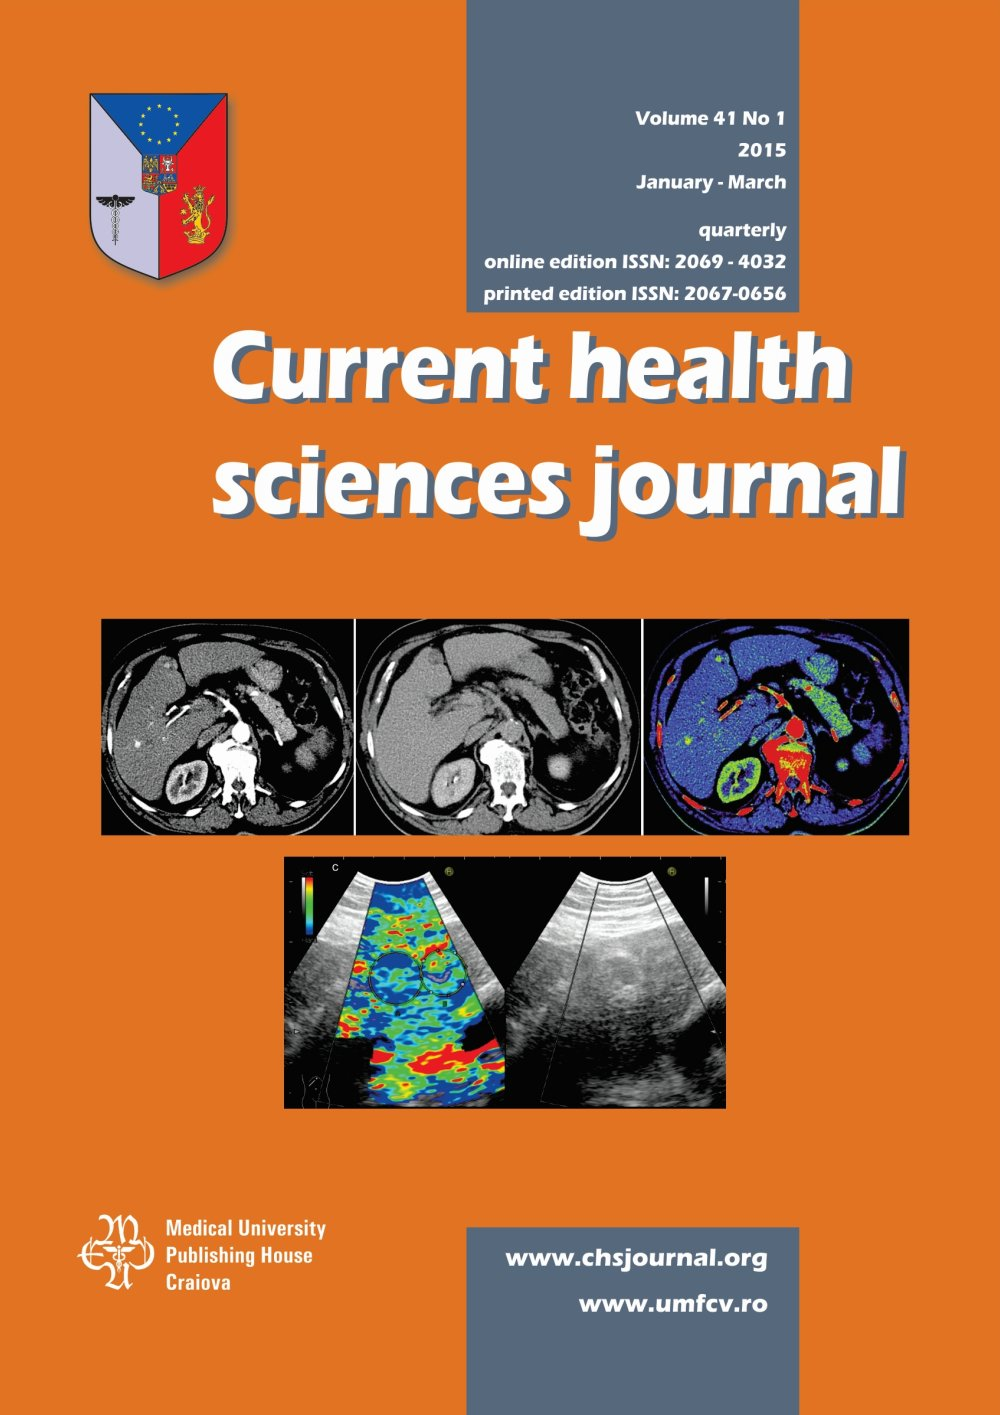 Current Health Sciences Journal, vol. 41 no. 1, 2015